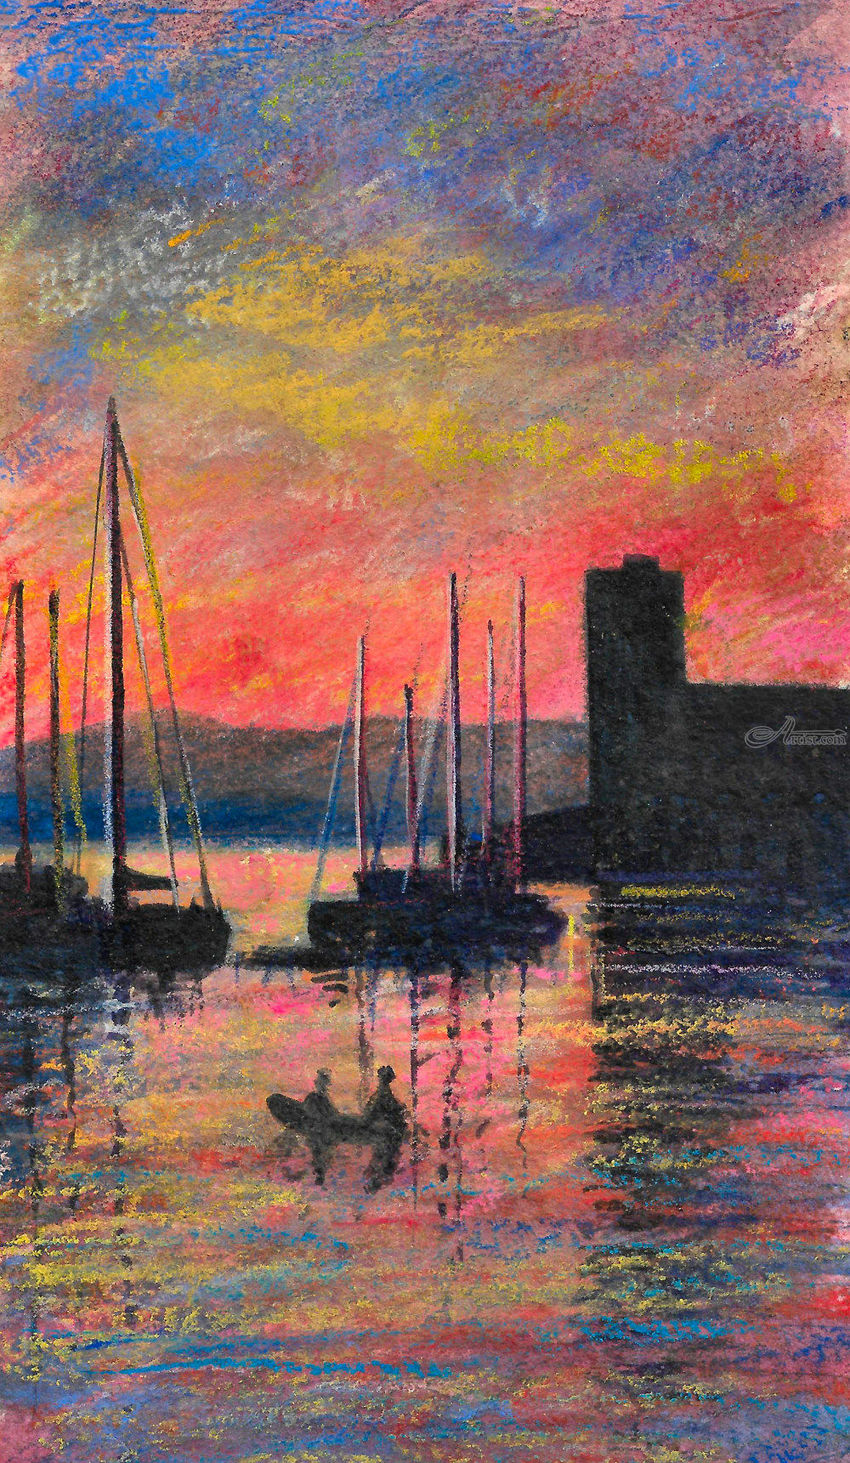 Sunset in Oban Harbour, Paintings, Fine Art, Impressionism, Realism, Composition, Landscape, Seascape, Mixed, Painting, Pastel, By Matthew David Evans